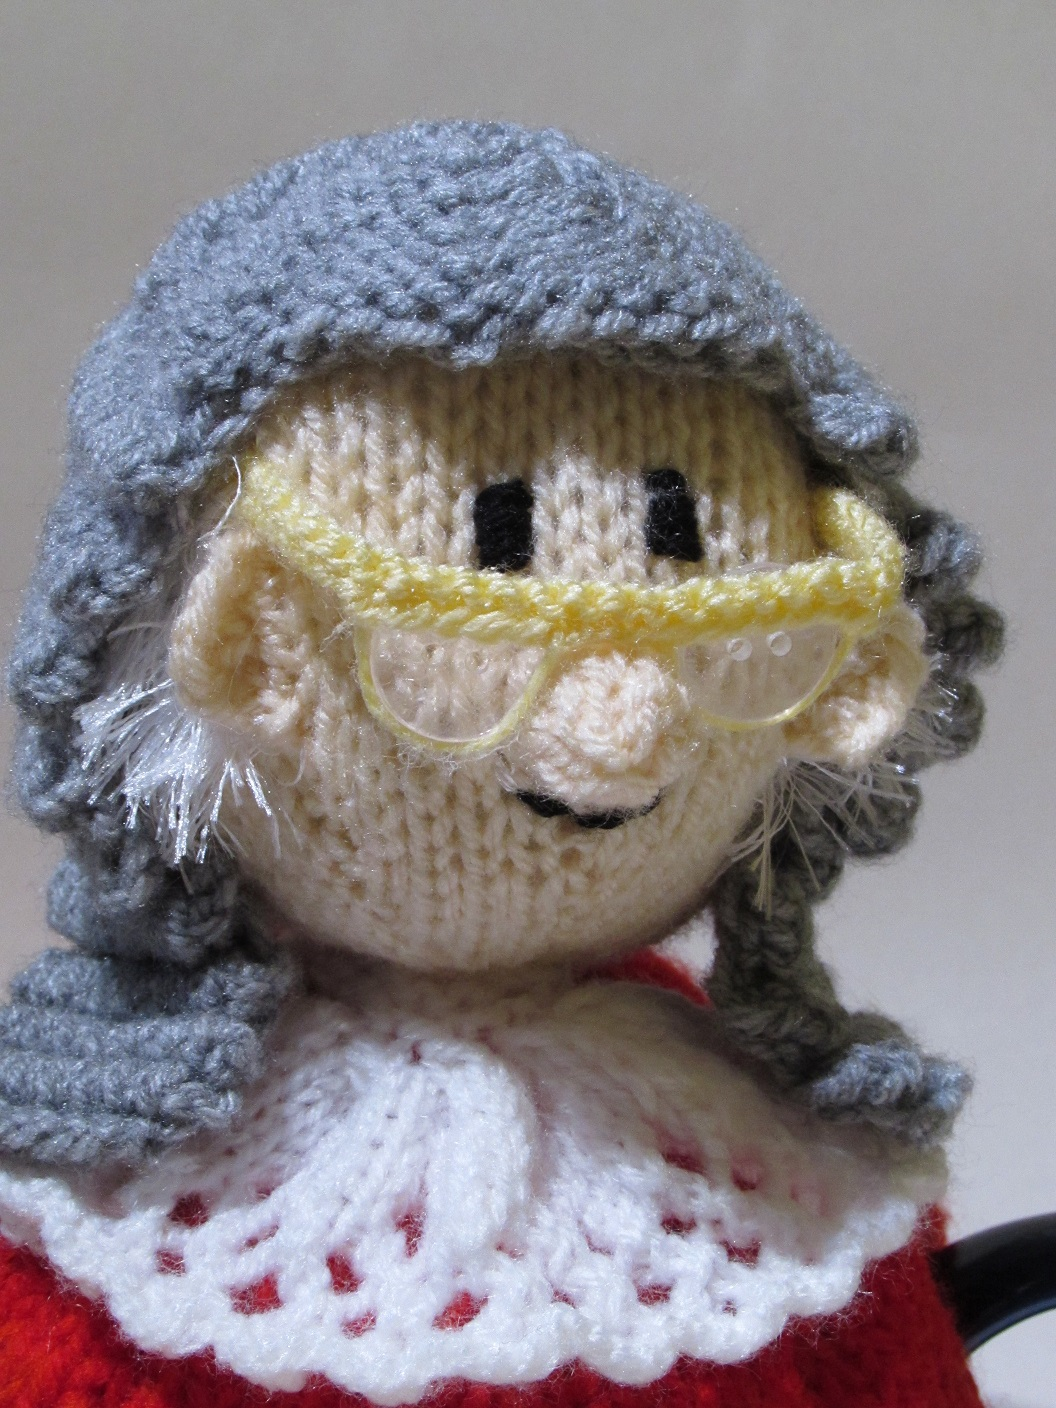 Judge knitting pattern